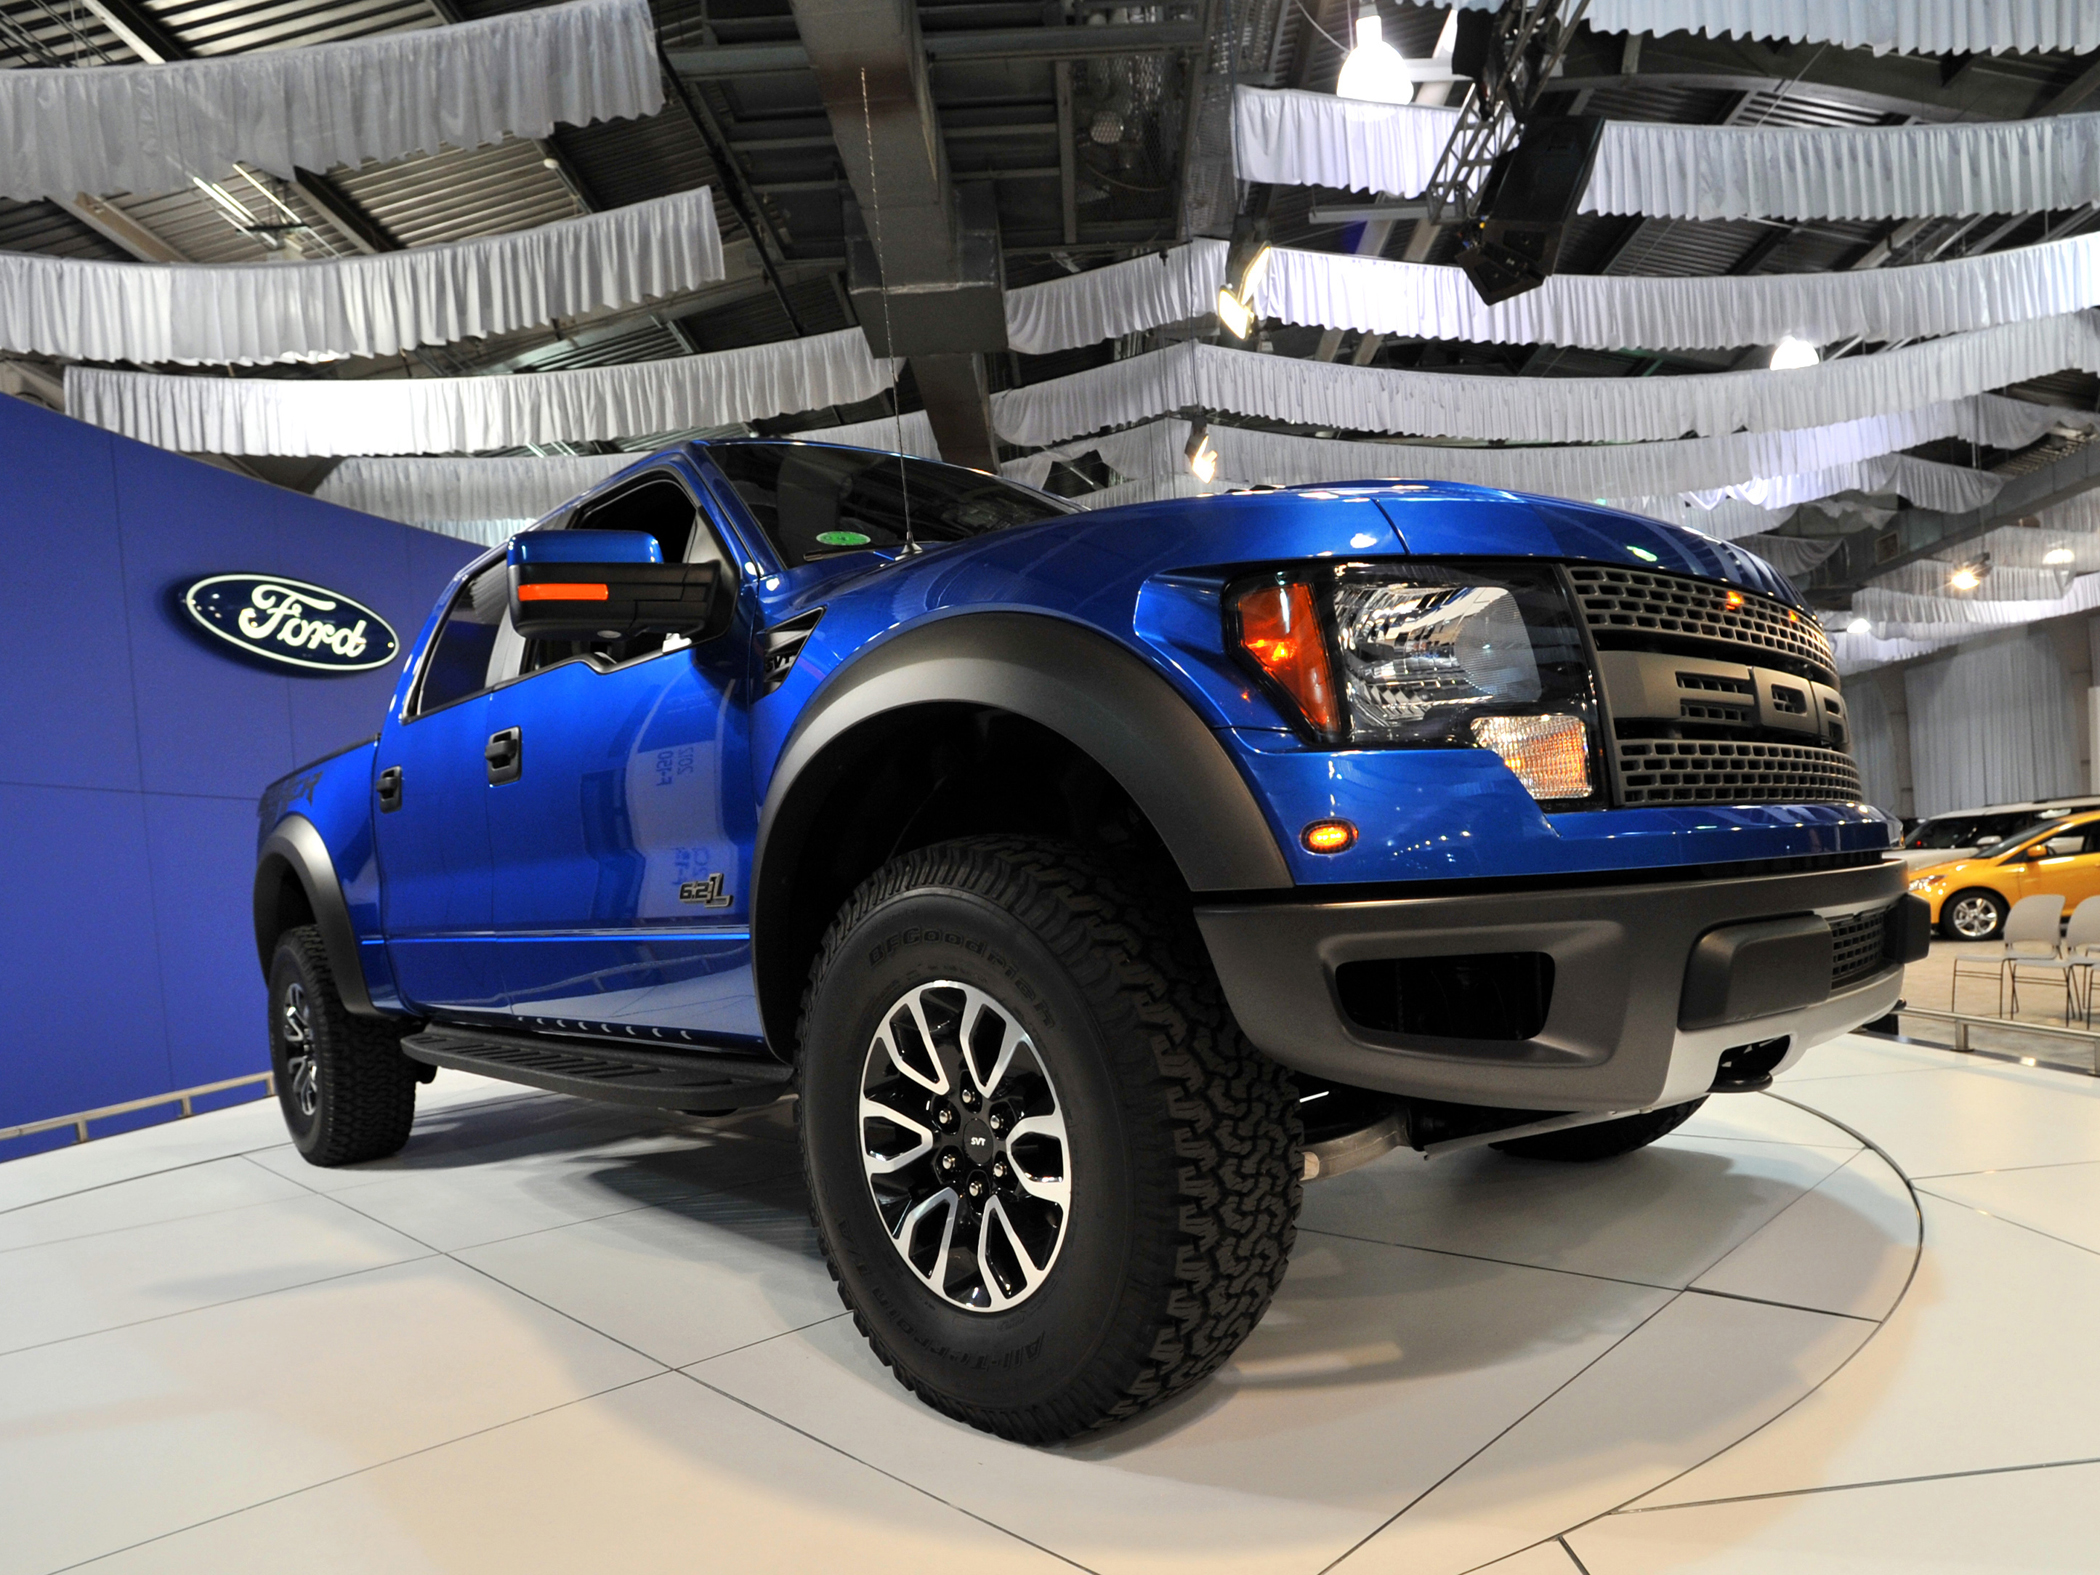 the 16 valve 62 liter v 8 sohc engine is the standard engine on the 2012 raptors it puts out 411 horsepower and 434 lb ft of torque - 2012 Ford F 150 Svt Raptor